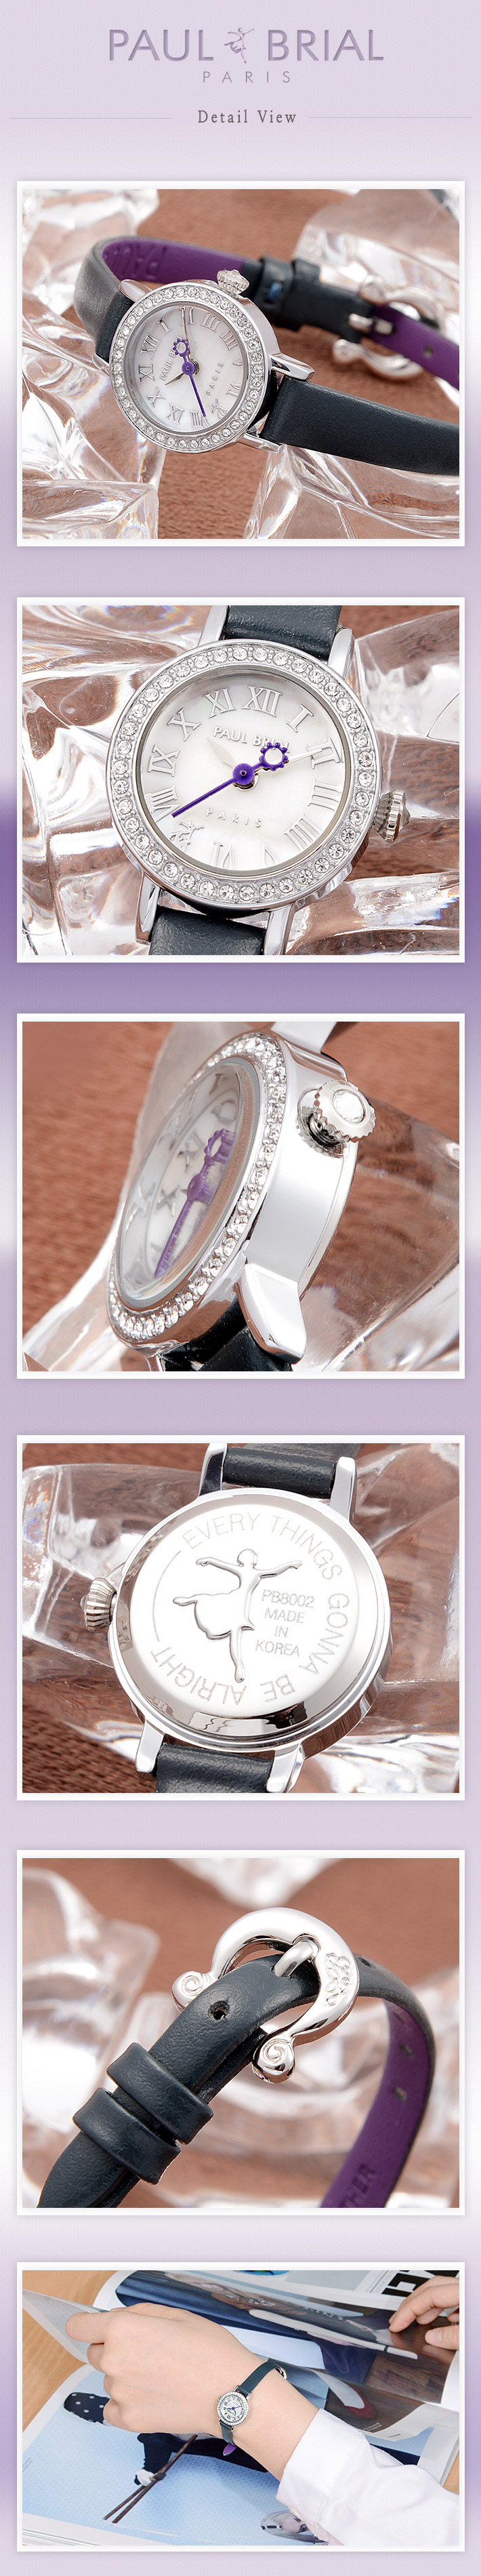 [ PAUL BRIAL ] KOREA MADE HIGH QUALITY LADIES SILVER NAVY LEATHER BAND WATCH PB8002WTNV_R MARSEILLE